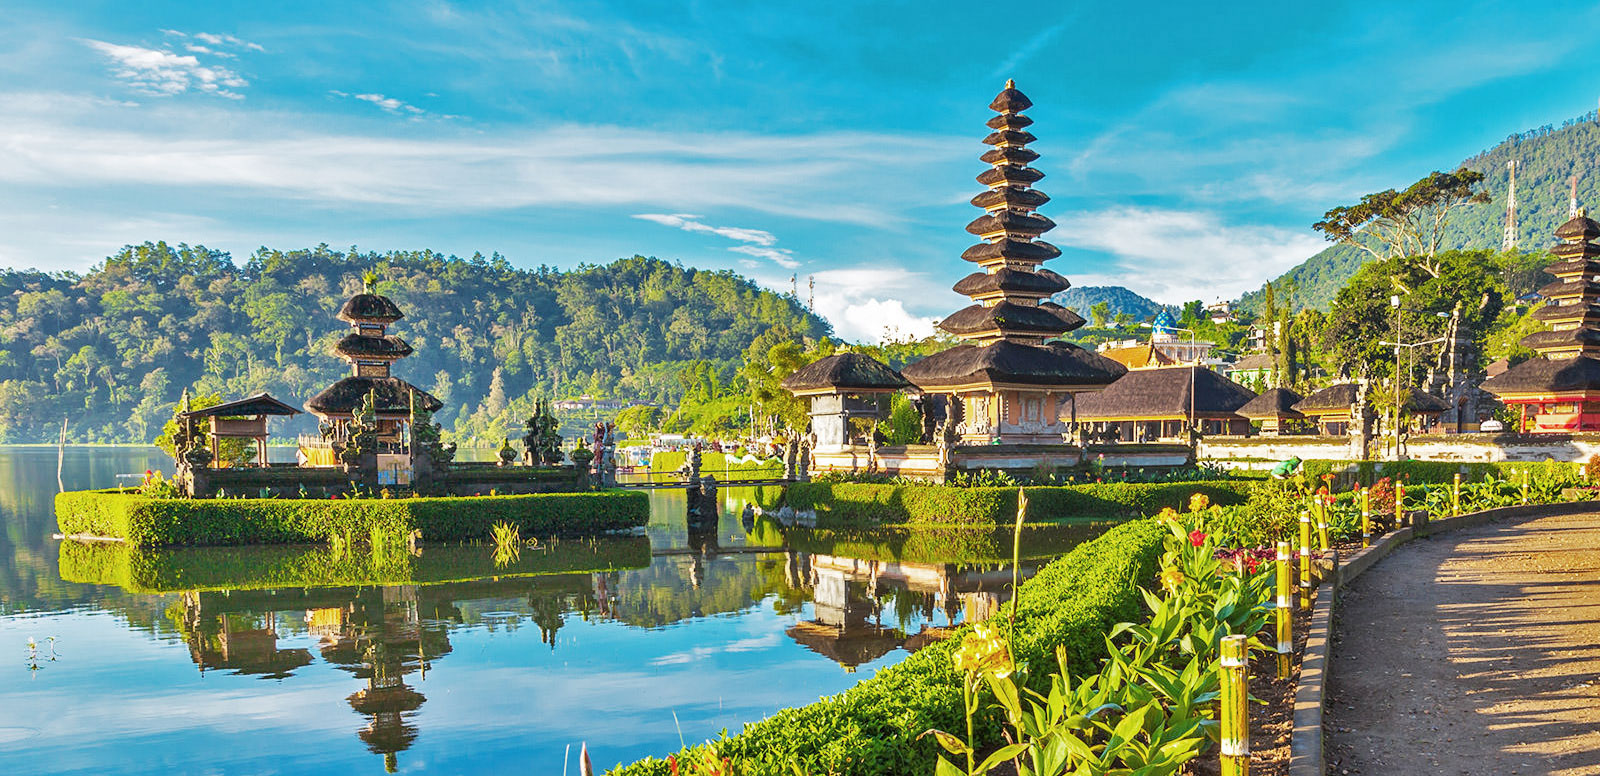 Indonesia – Global Group Travel Services